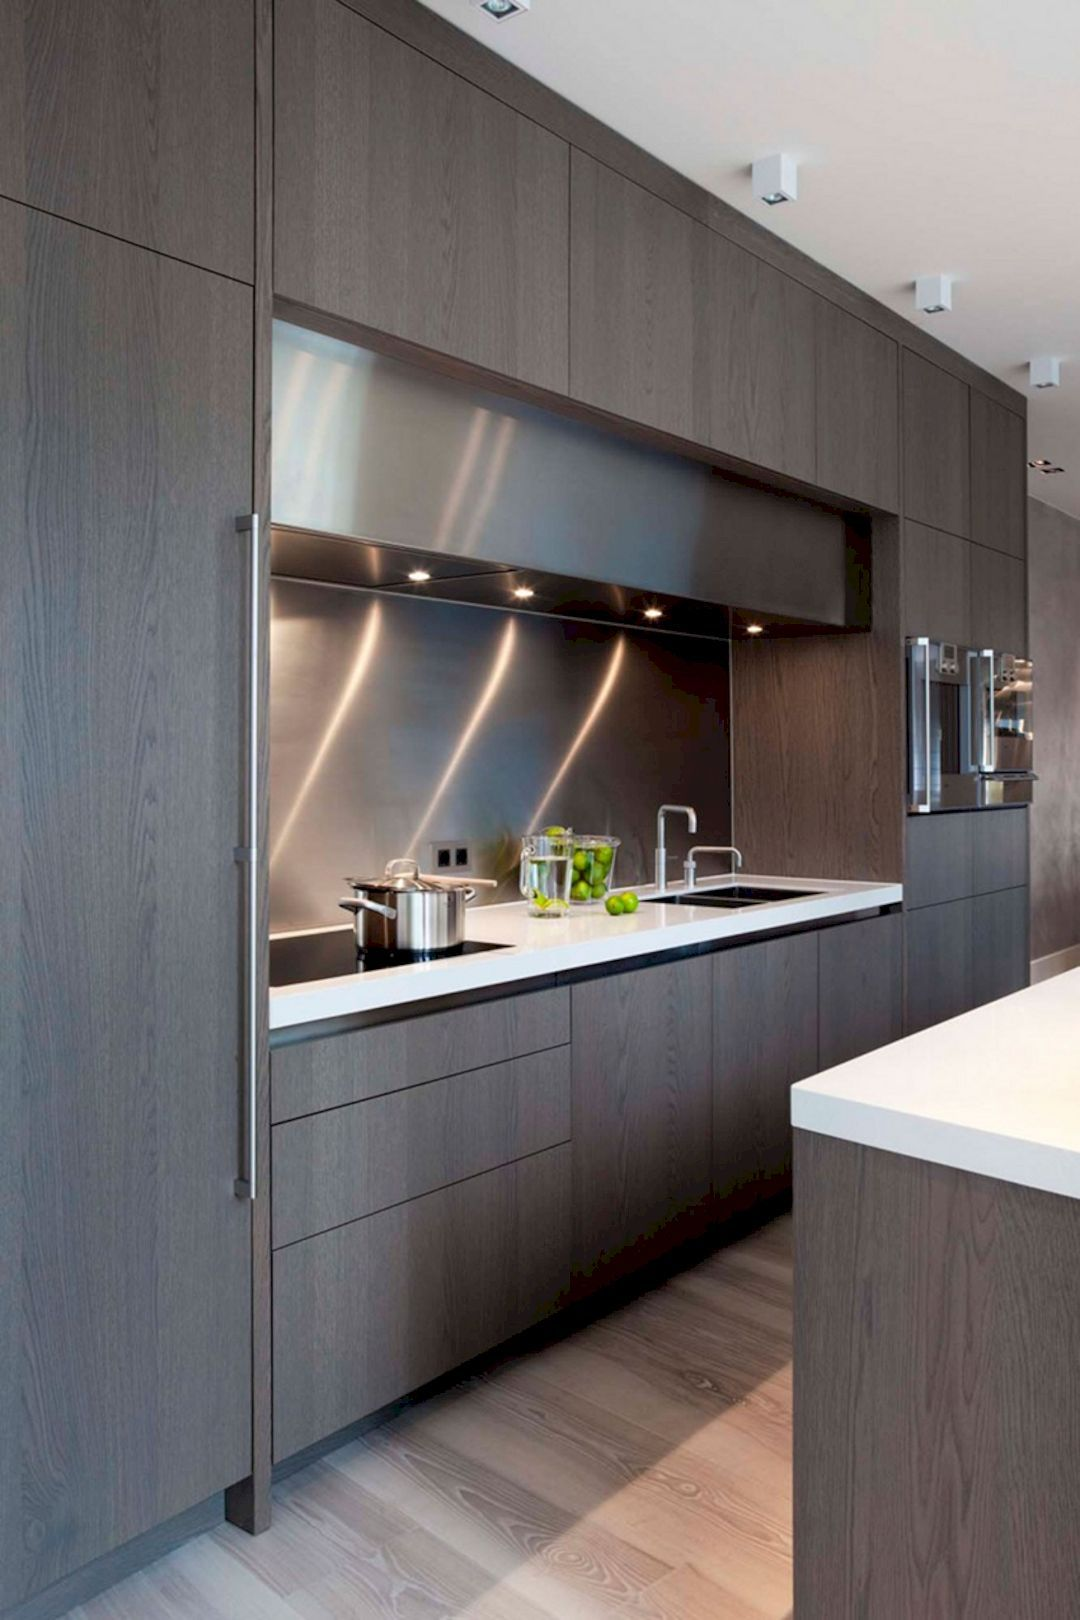 modern kitchen cabinets stylish modern kitchen cabinet: 127 design ideas  https://www.futuristarchitecture.com/20591-modern-kitchen-cabinet.html MHDZUGW